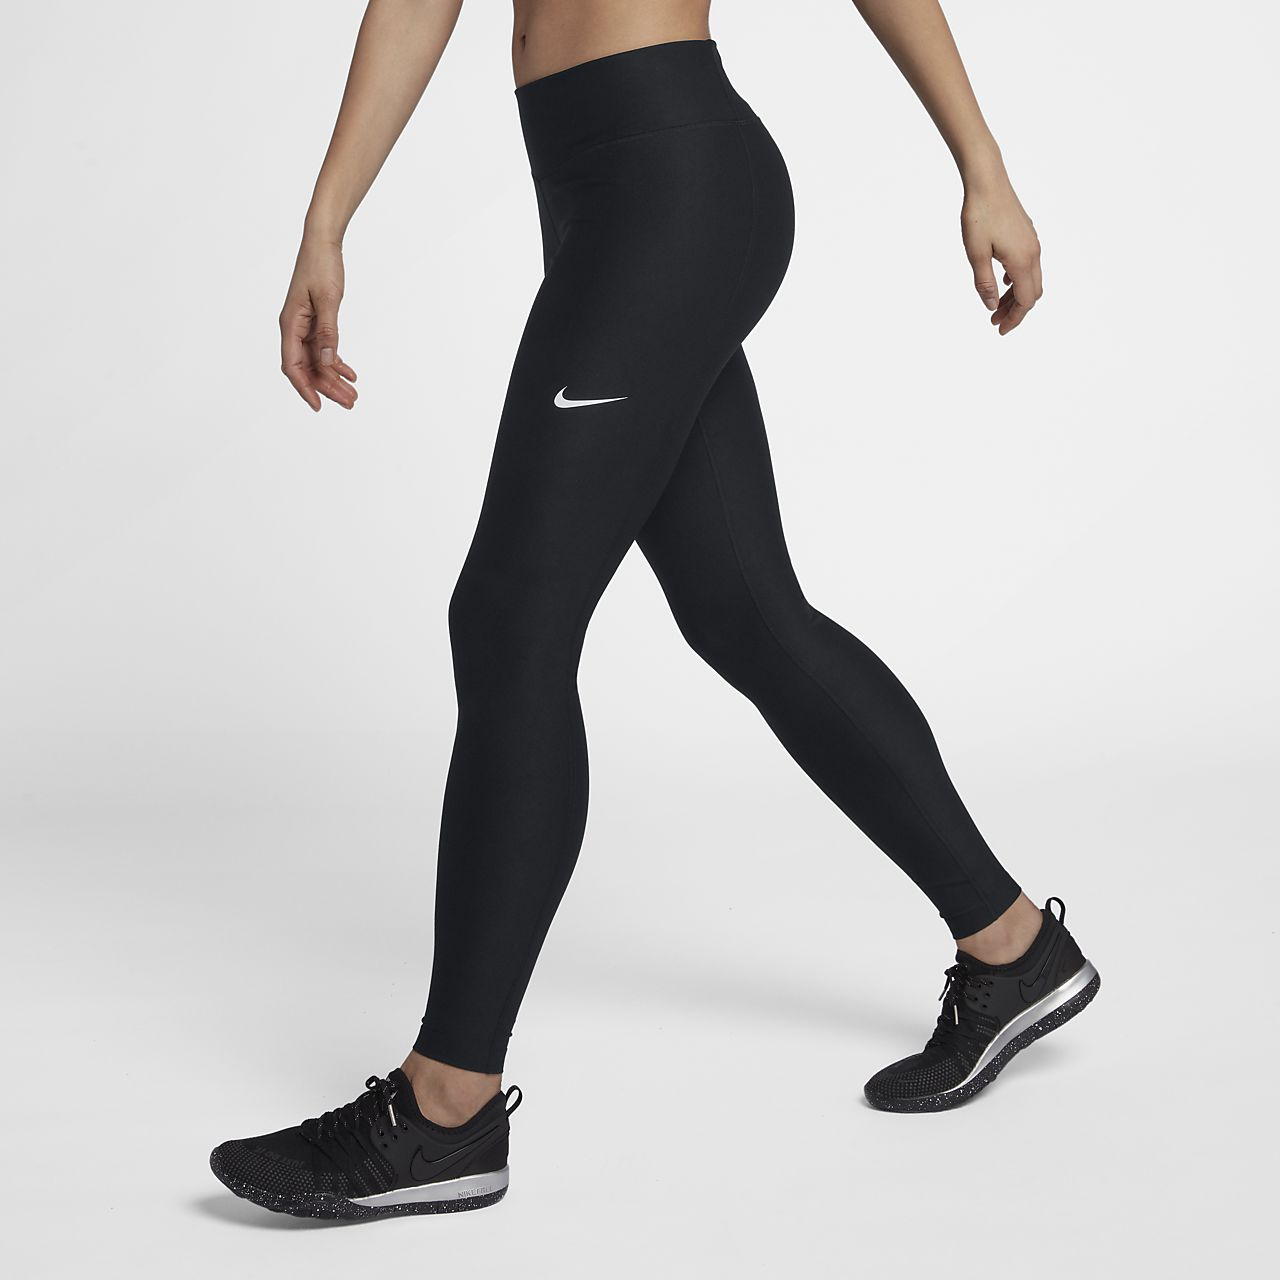 Nike Power Victory Women's Training Tights